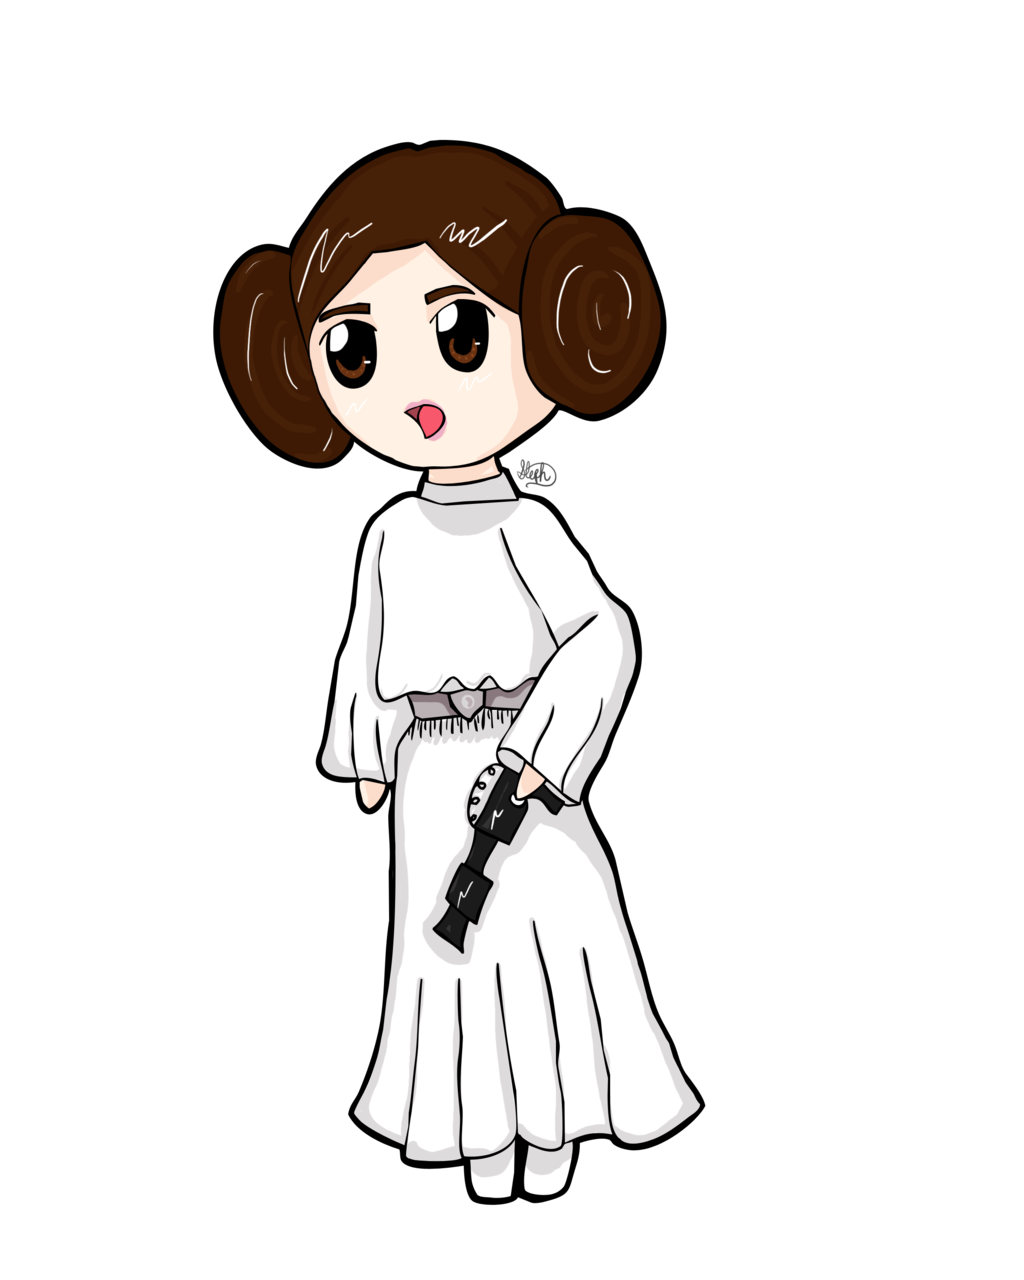 Star Wars clipart doodles Star DeviantArt by Princess Leia